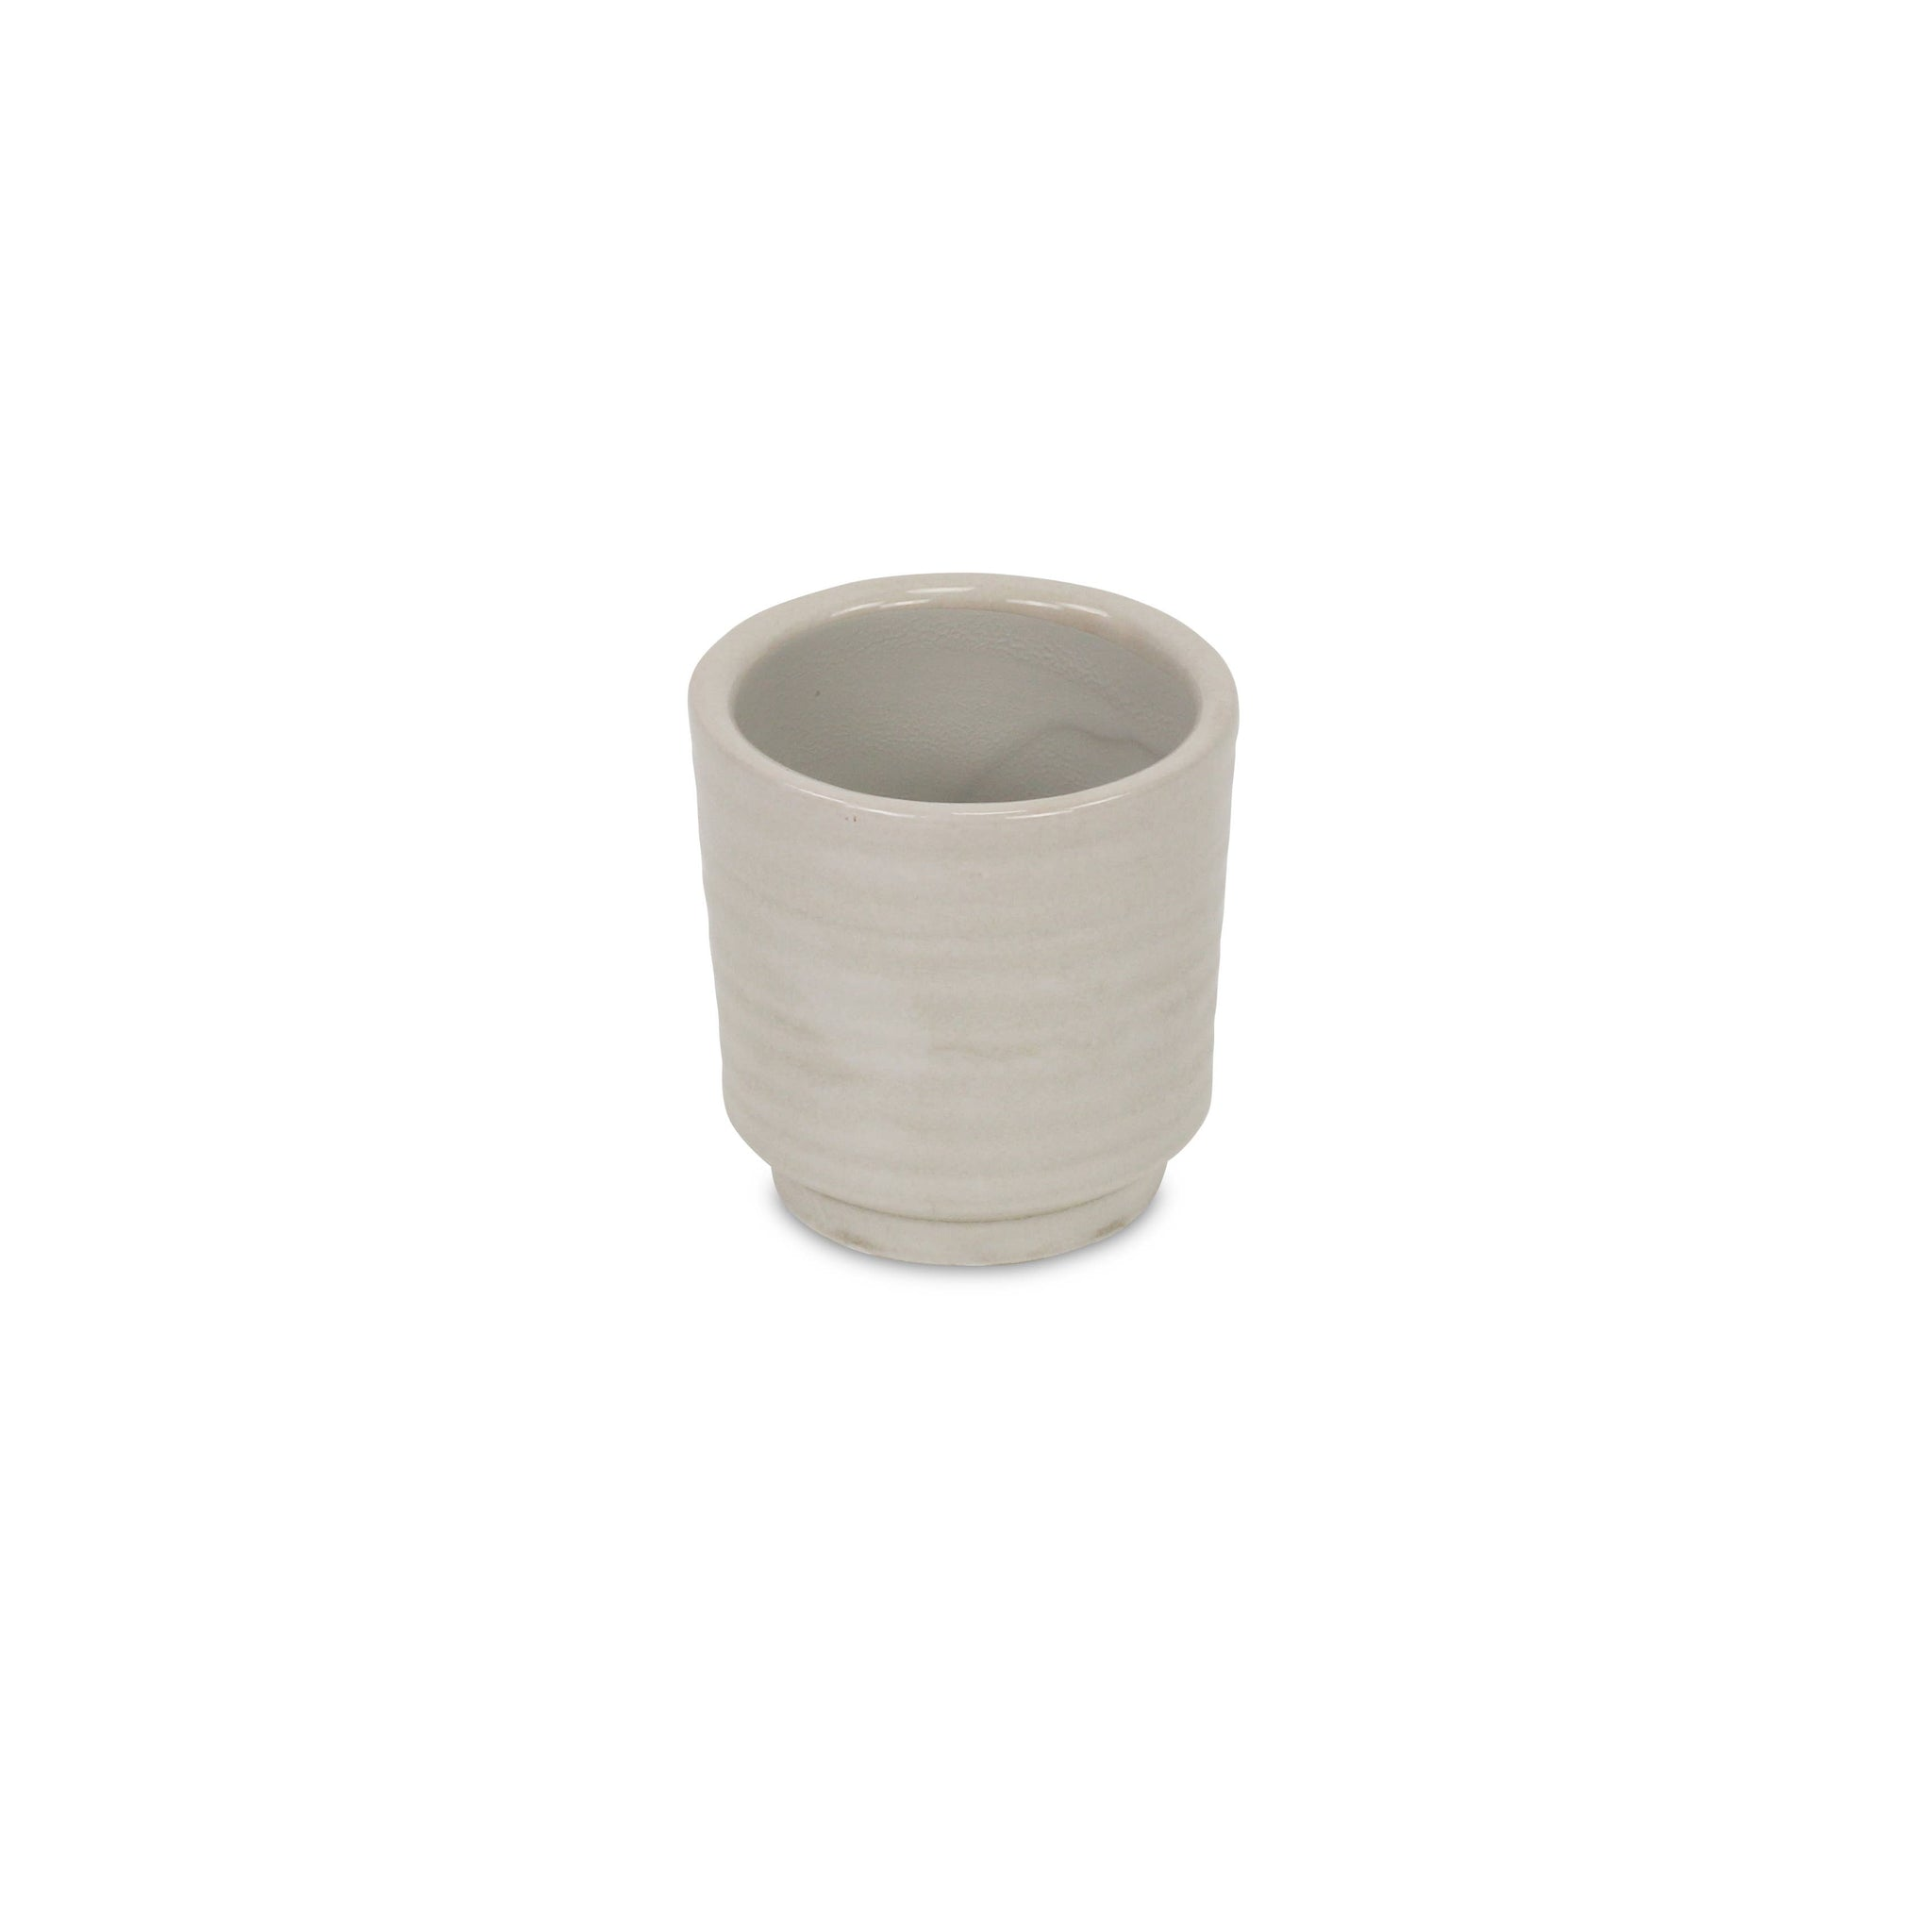 Off-white ripple pattern ceramic planter